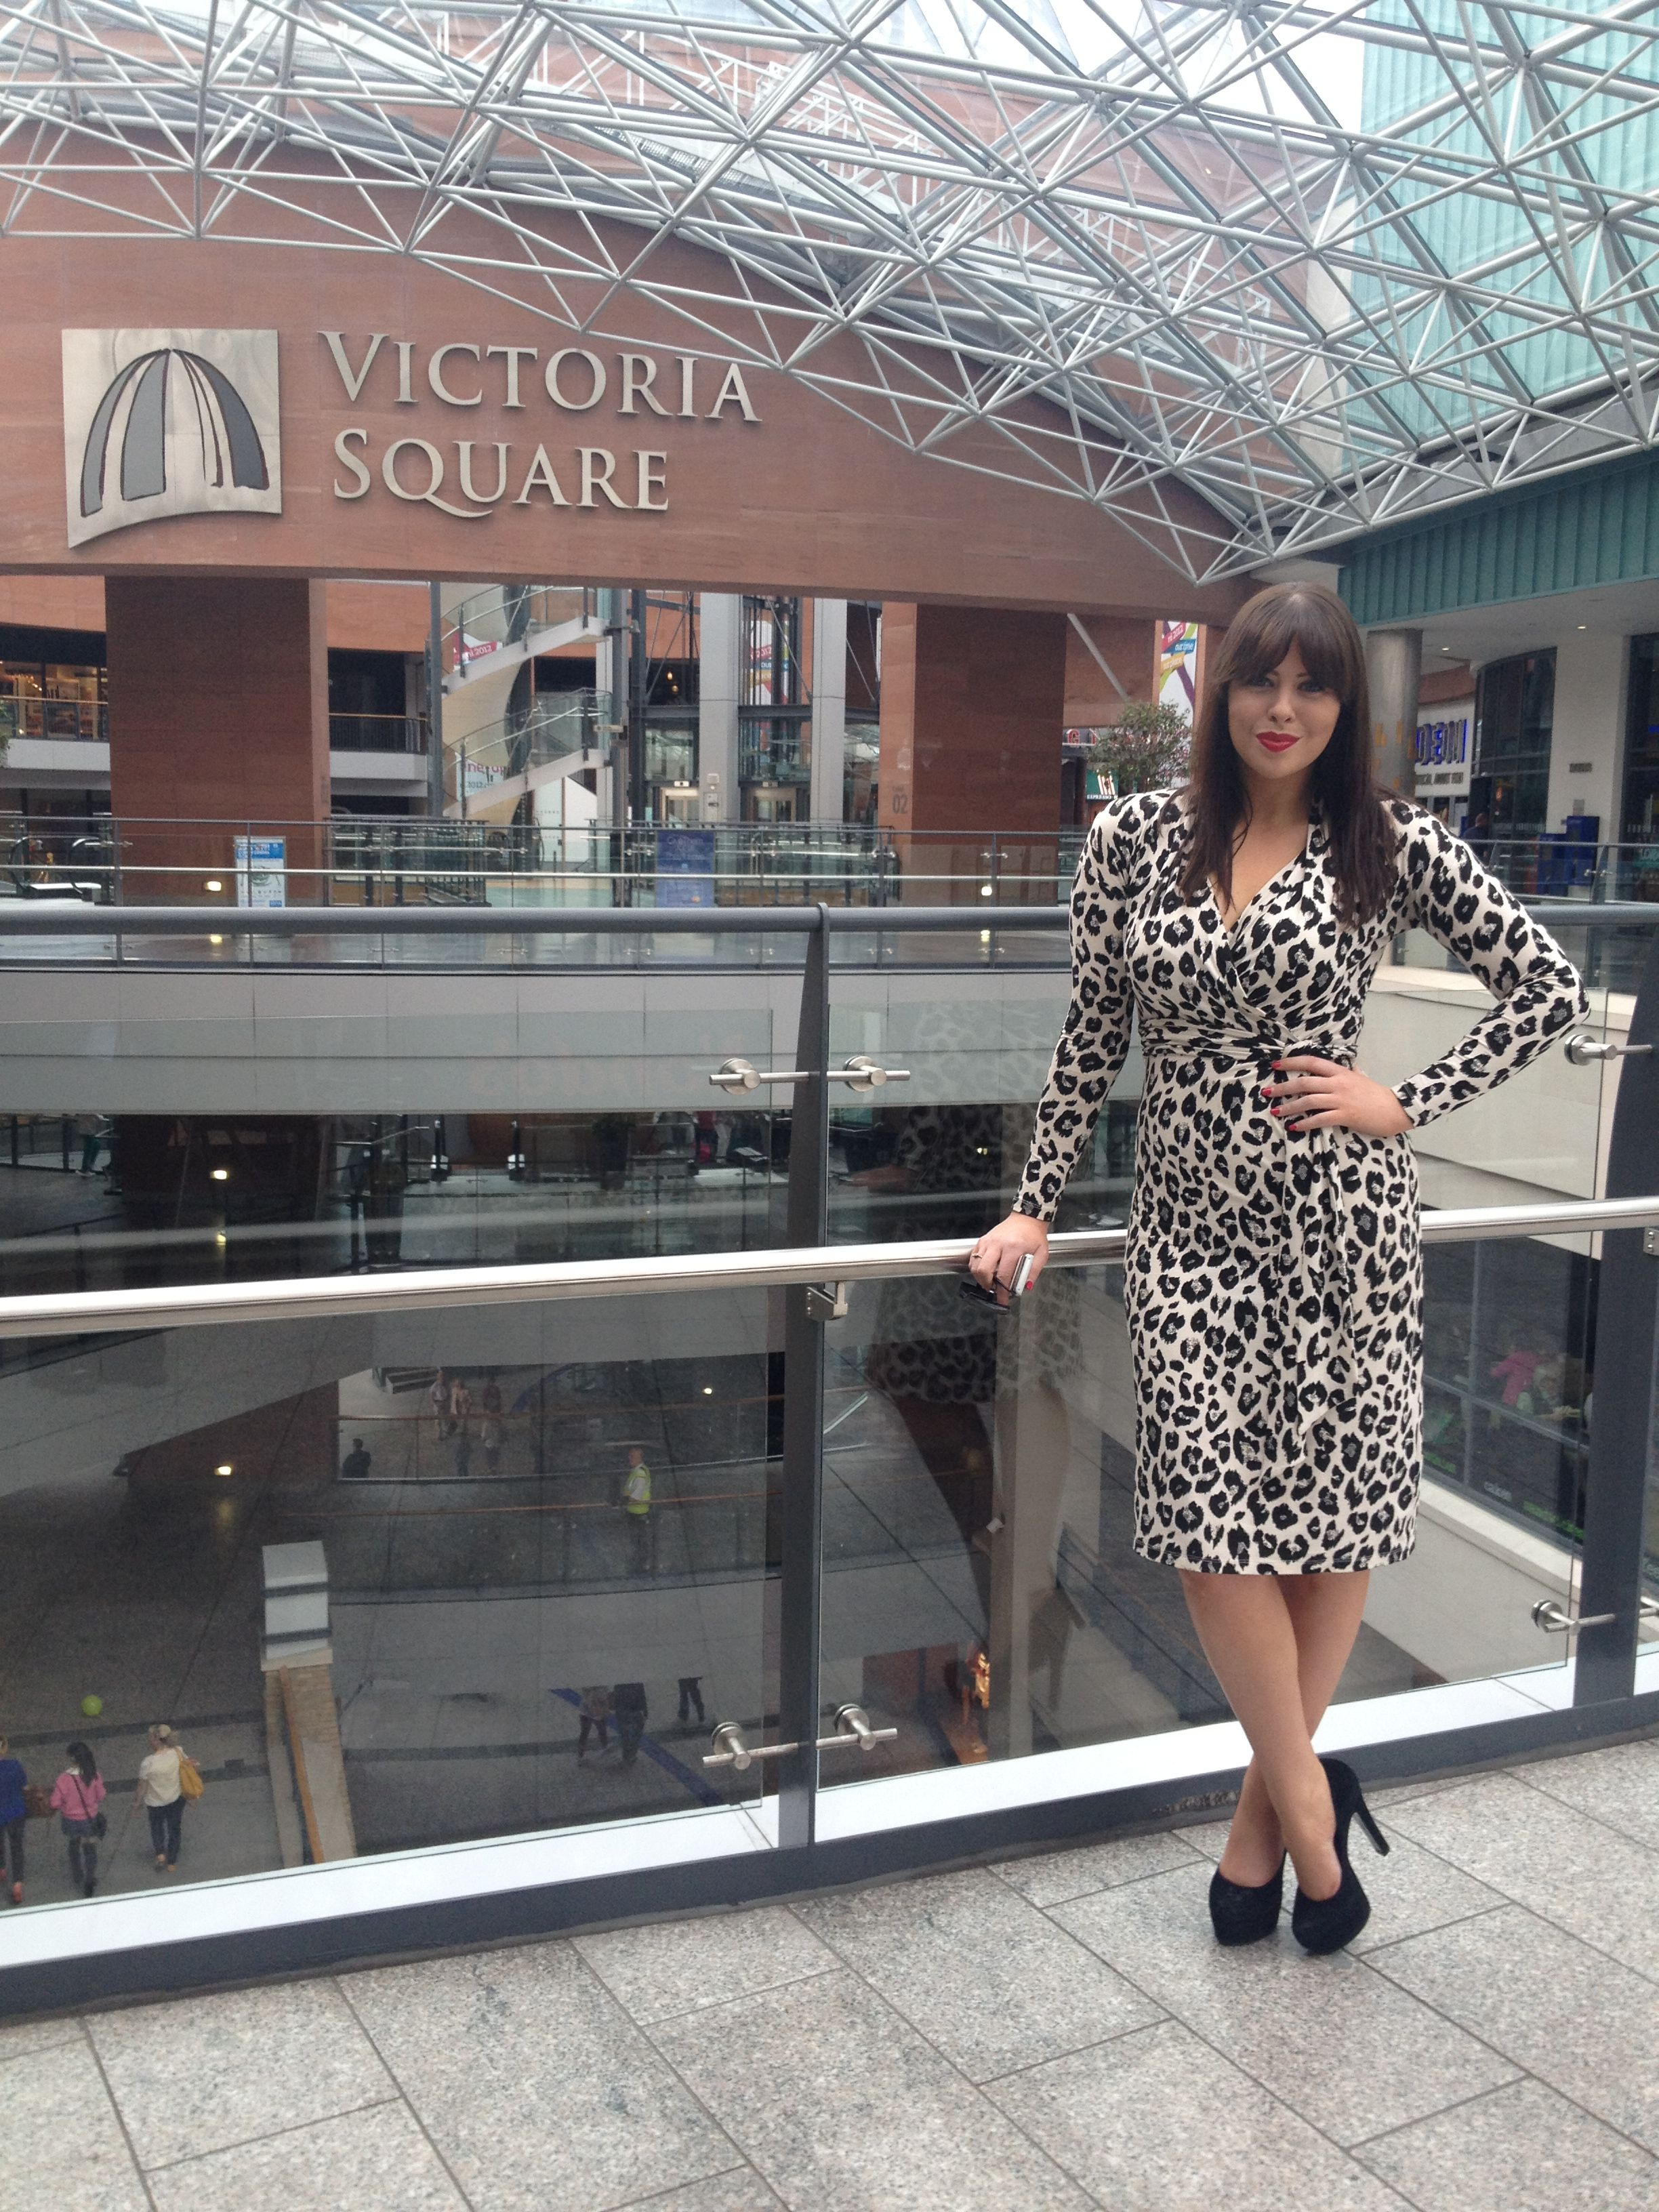 One of my fashion icons wearing a leopard print wrap dress from LK Bennett and double platforms from Kurt Geiger.